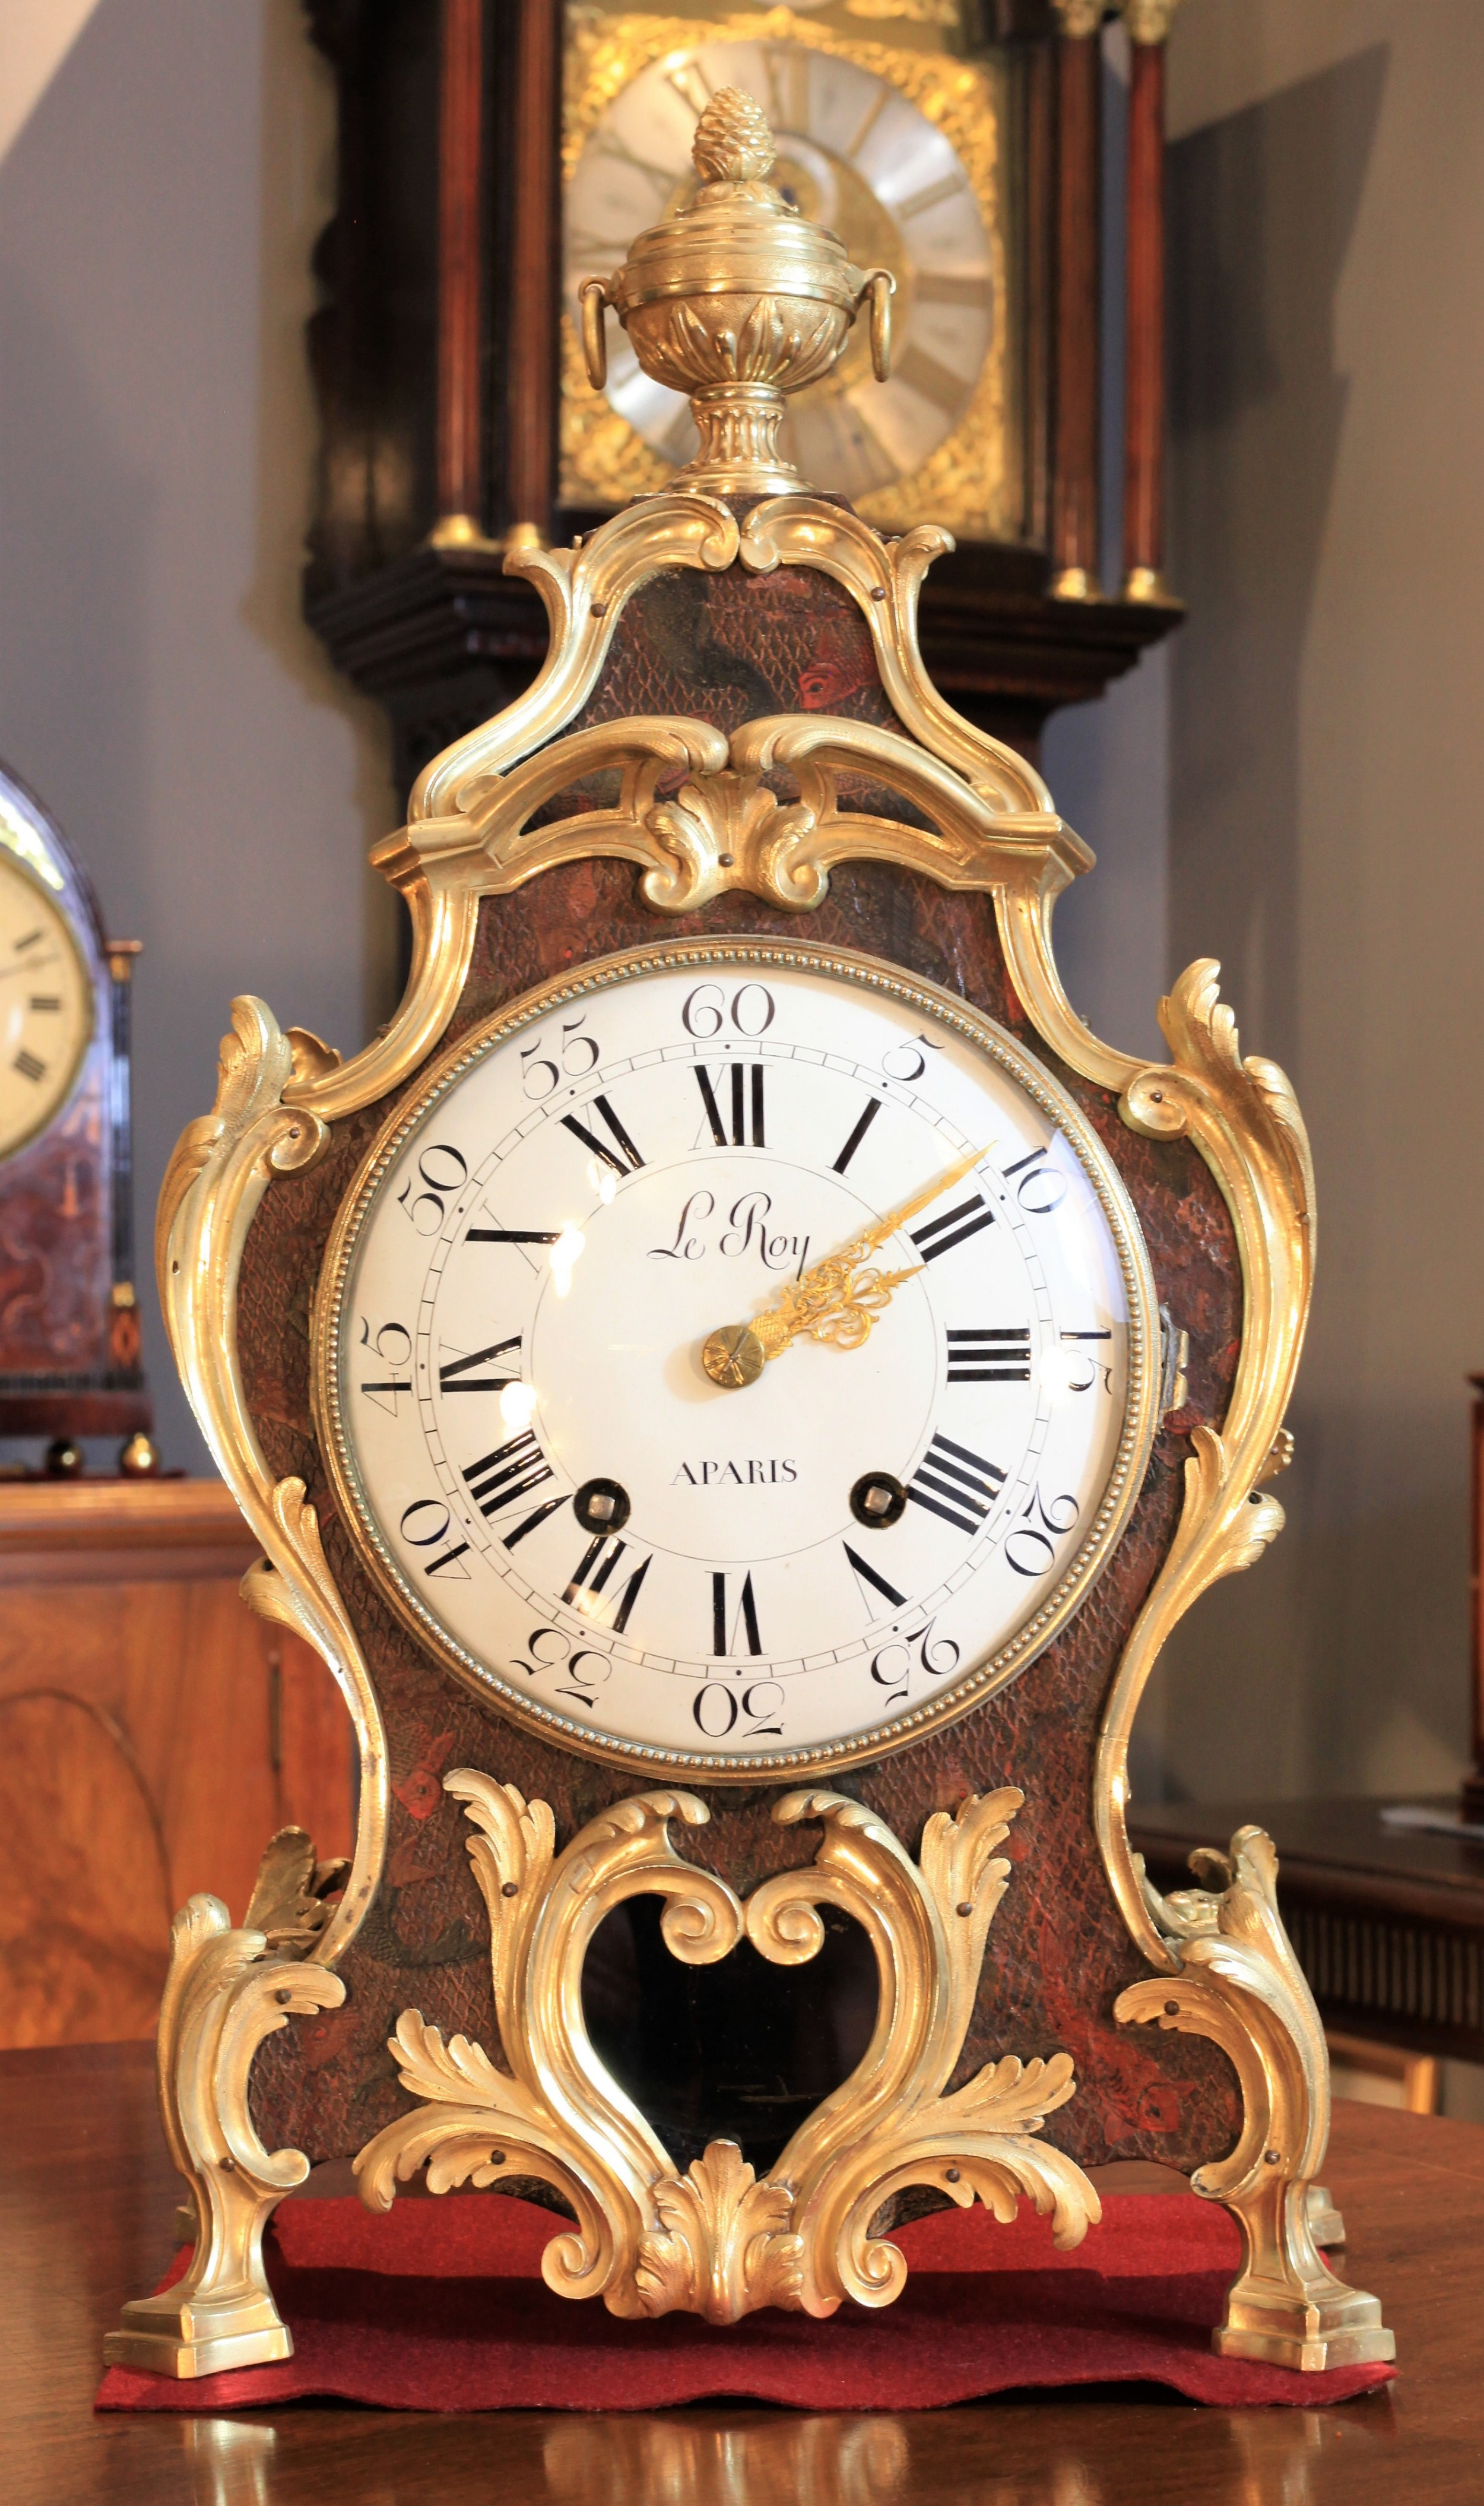 a rare 18th century french bracket clock by pierre le roy c1770